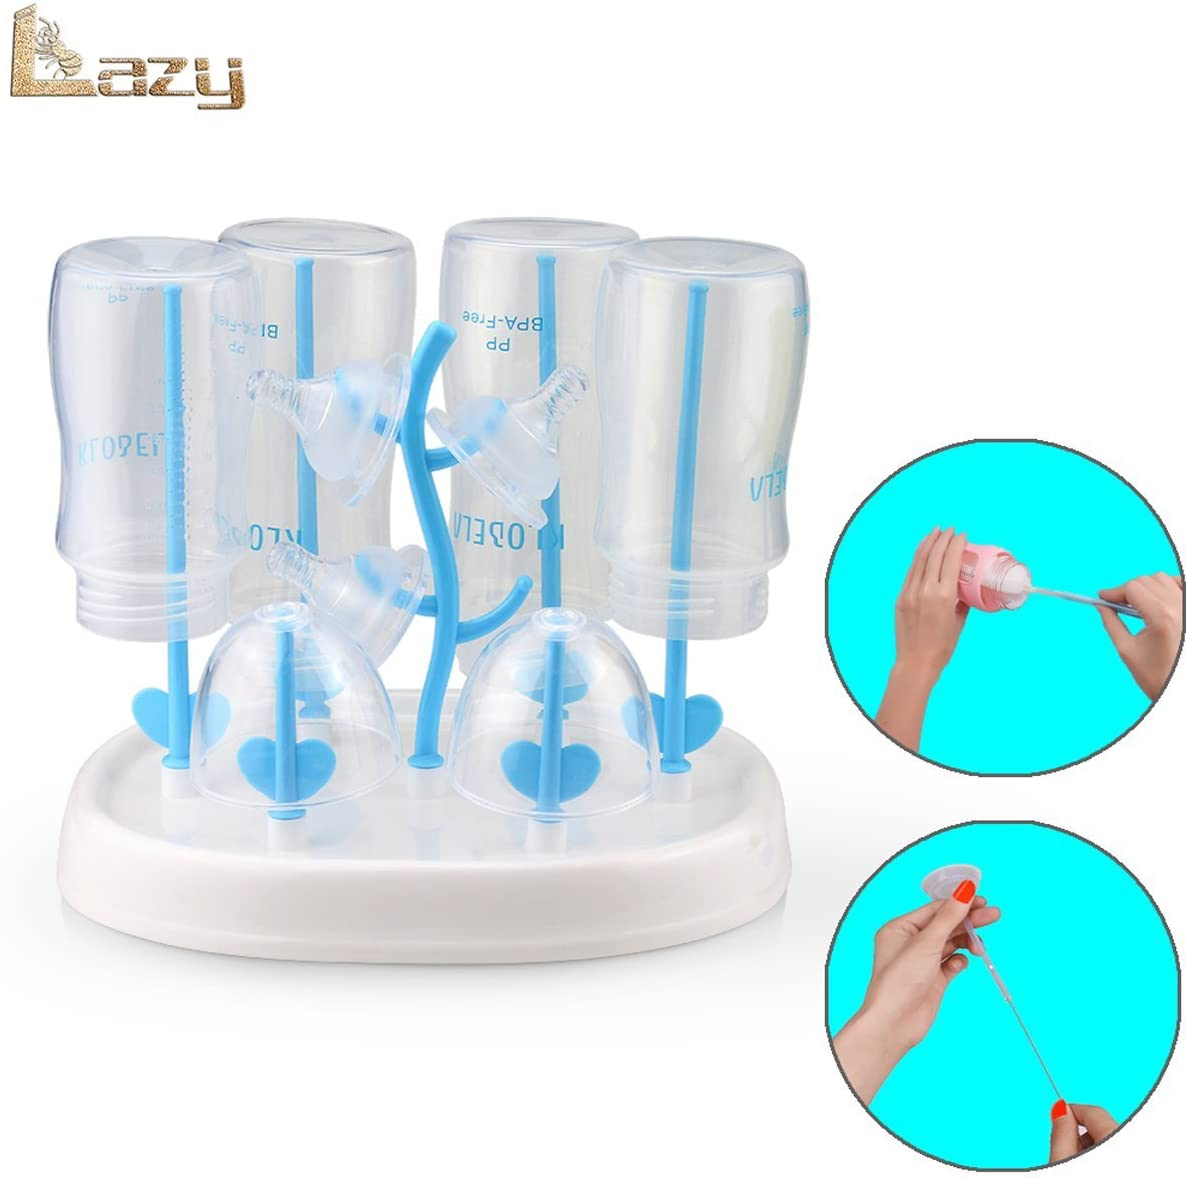 Bottle drying rack,easy to clean baby bottles dryer,healthy materials,baby bottle rack(sky blue)